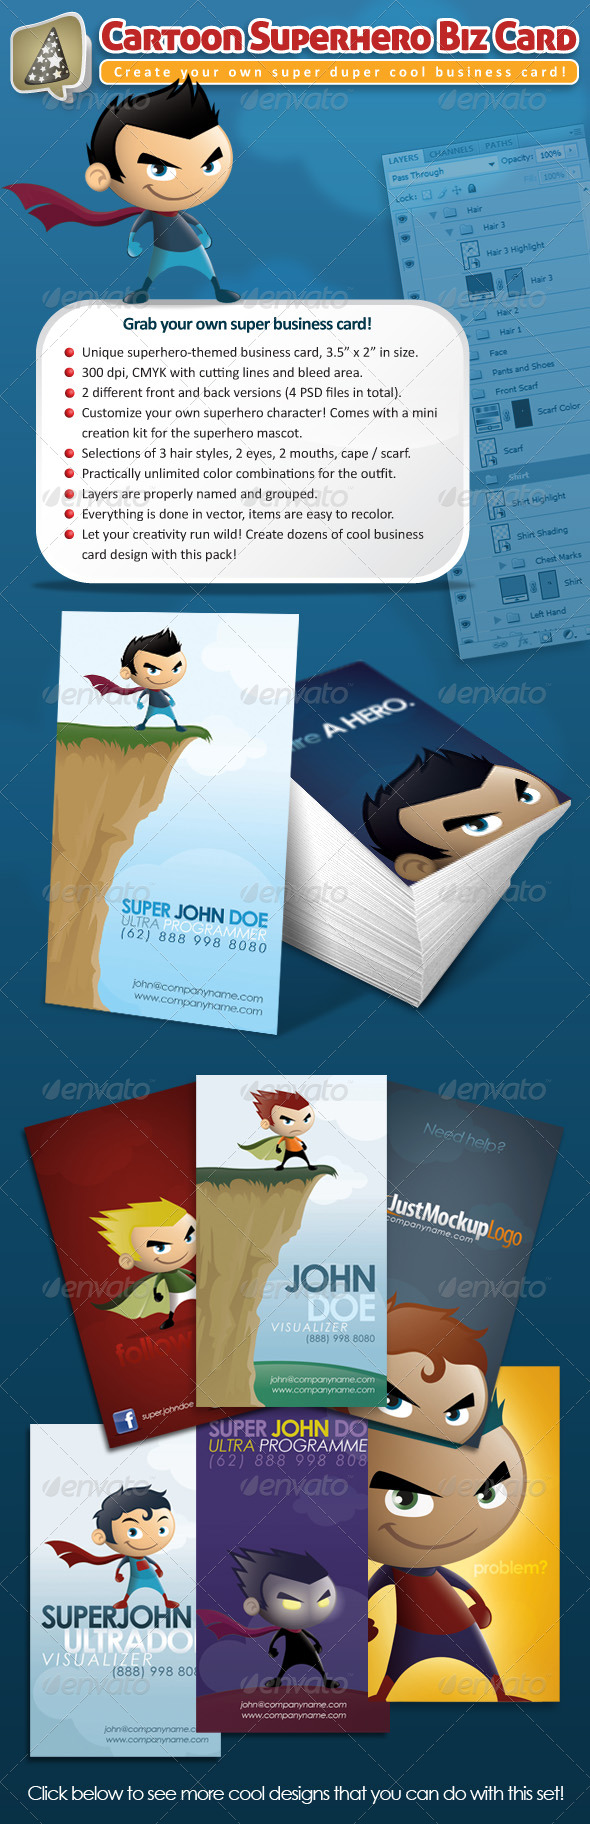 Cartoon Superhero Business Card Maker